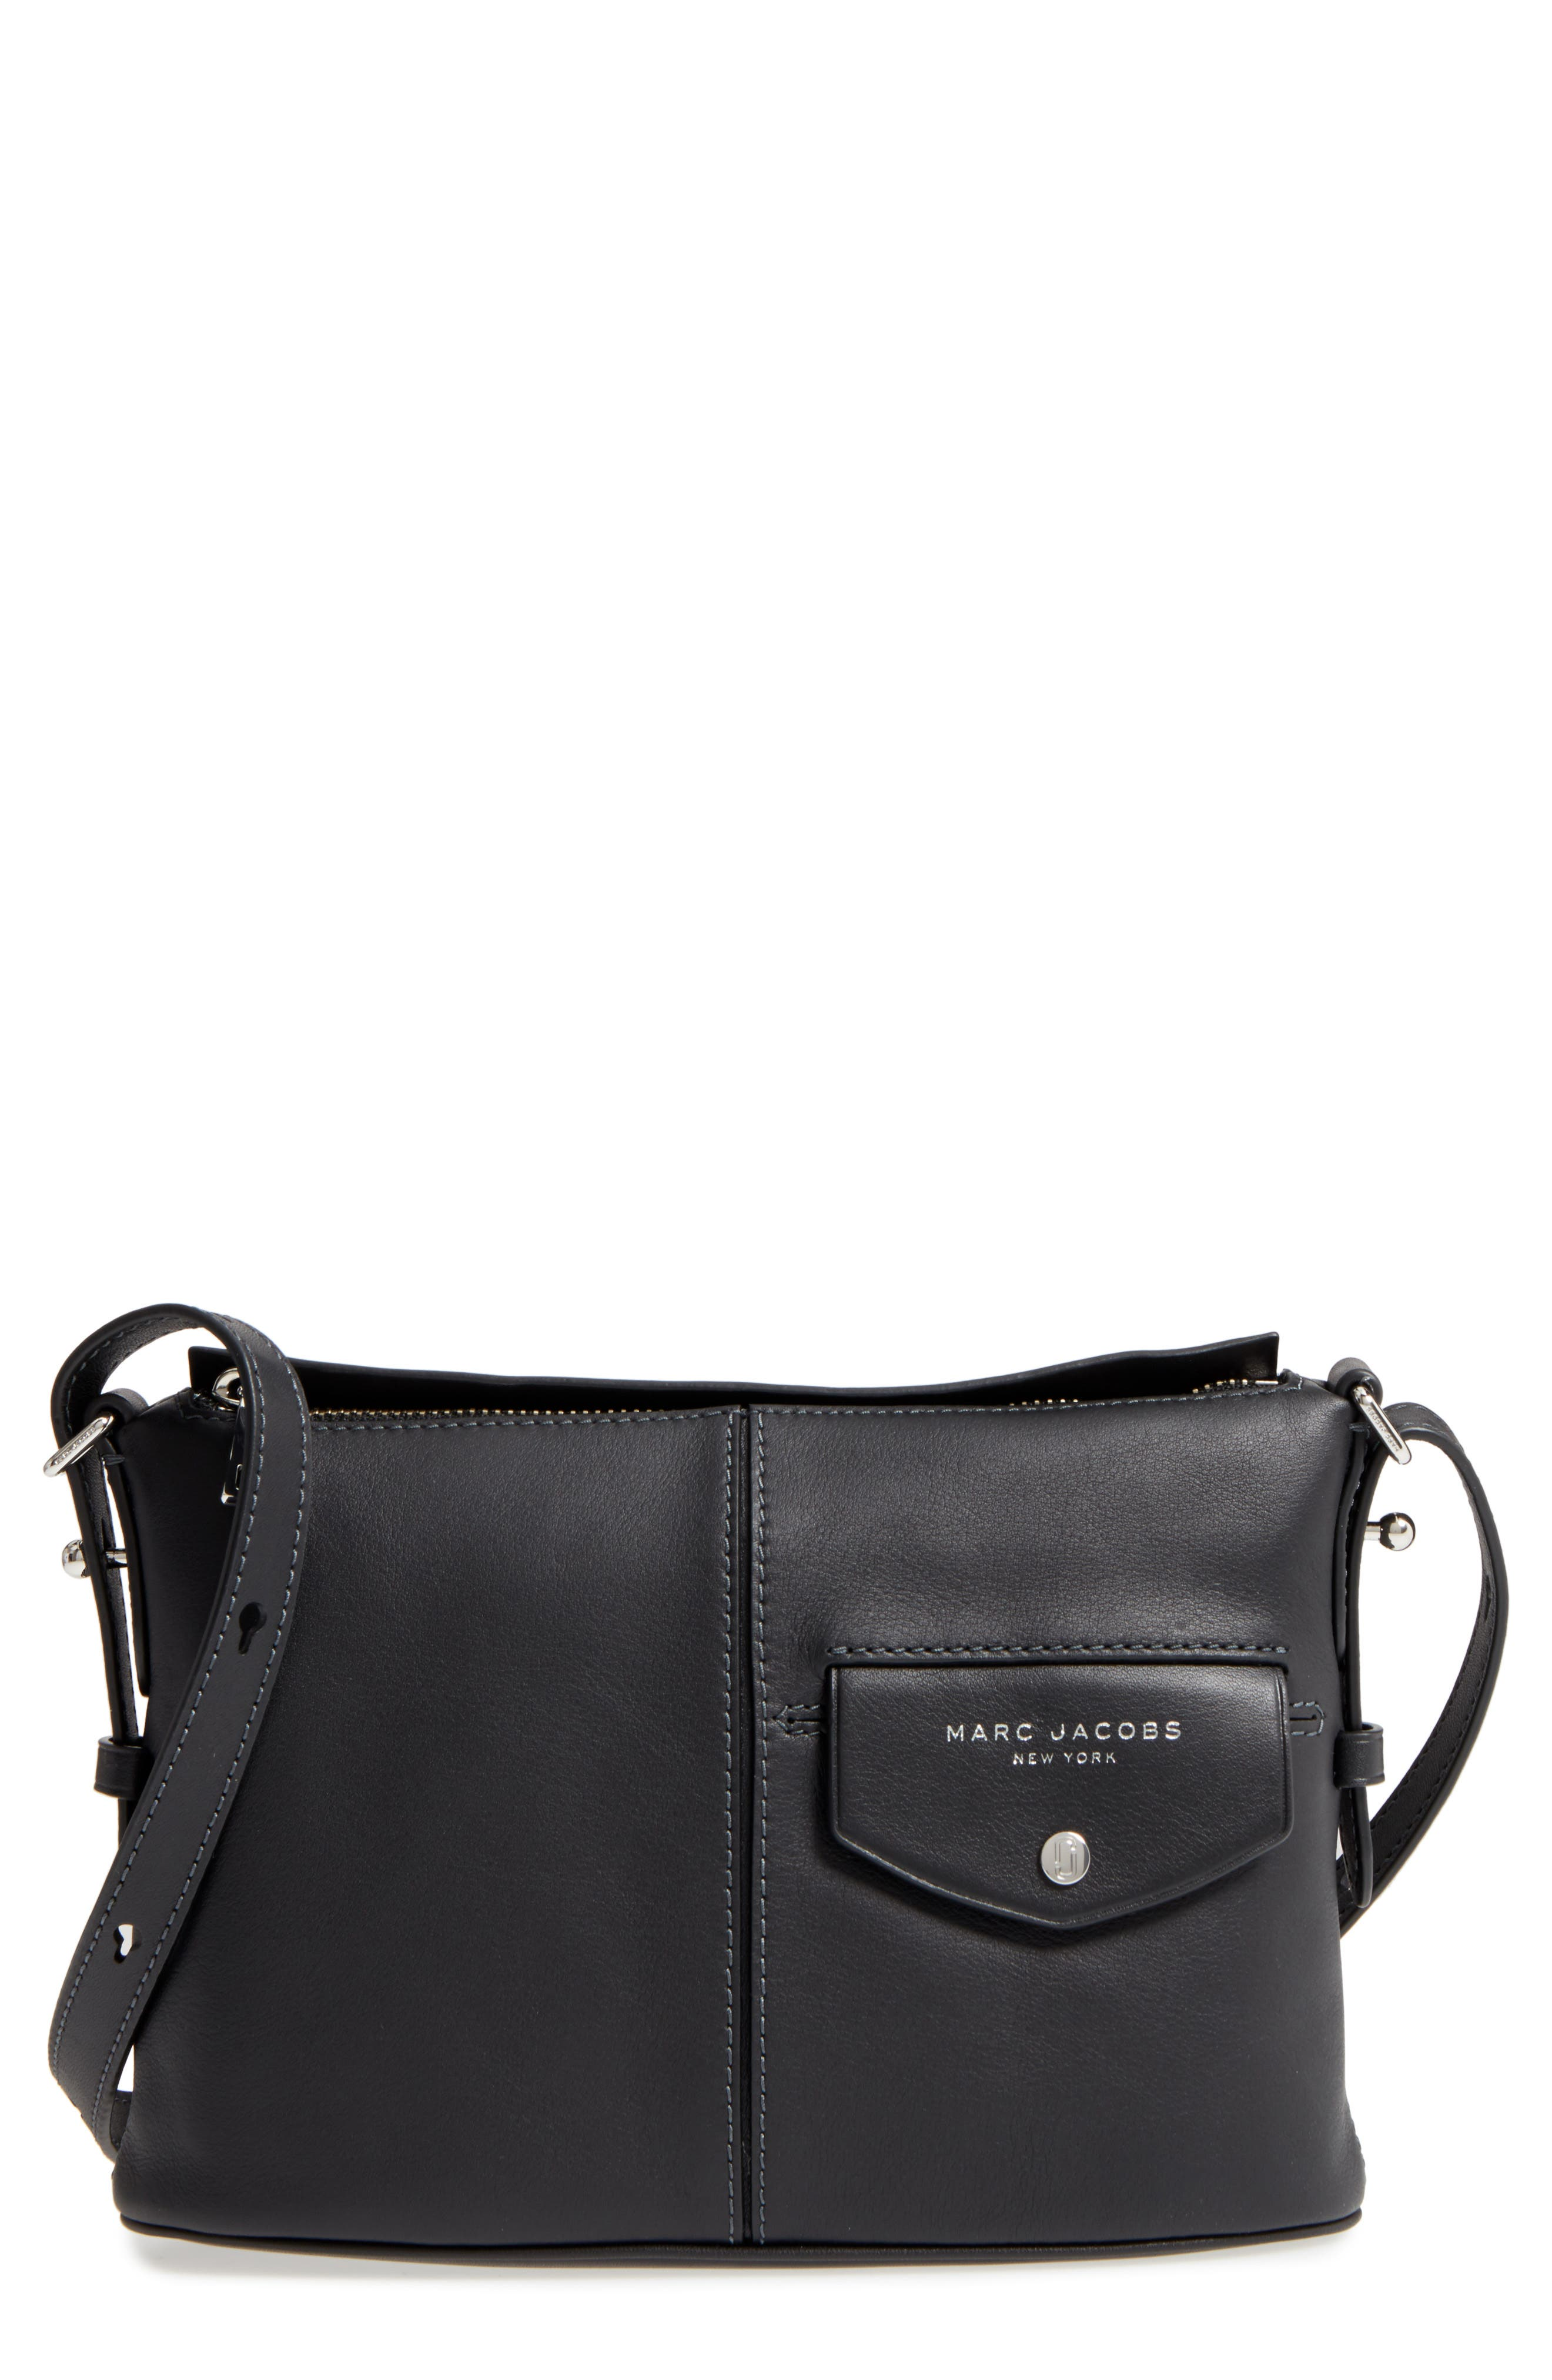 Alternate Image 1 Selected - MARC JACOBS The Side Sling Leather Crossbody Bag